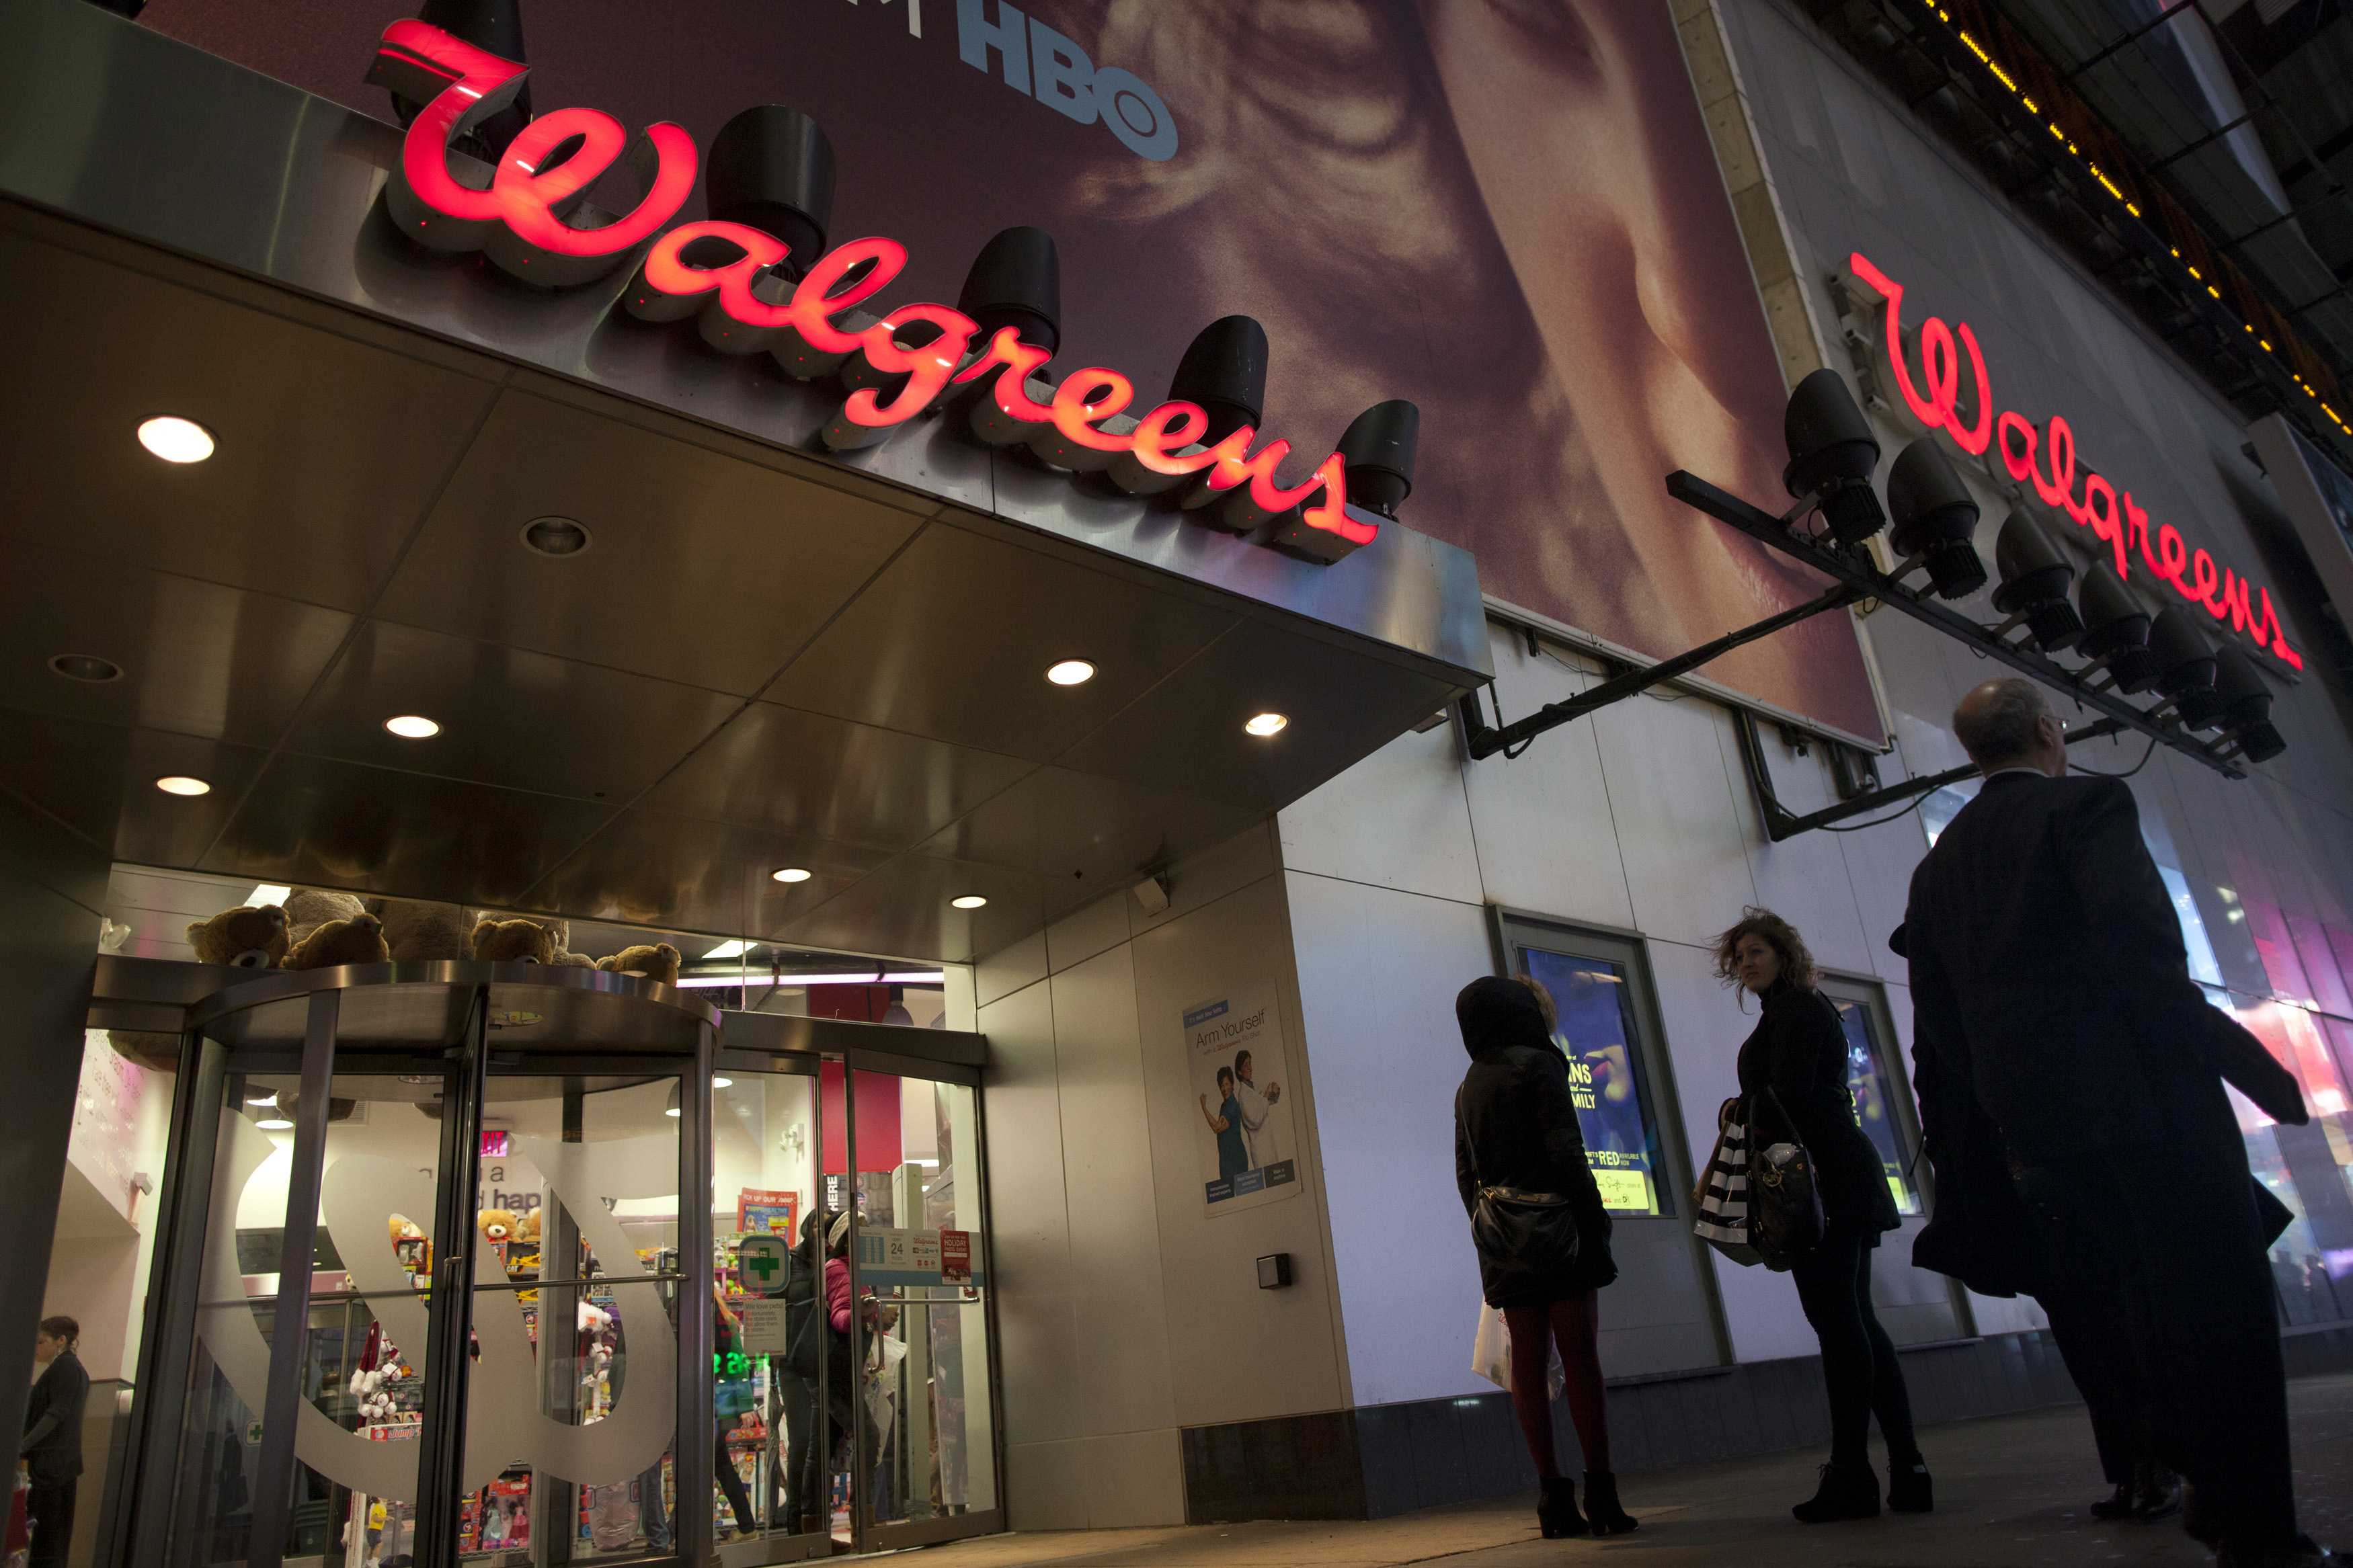 Walgreens reportedly looking at buying AmerisourceBergen, Frisco's largest employer""